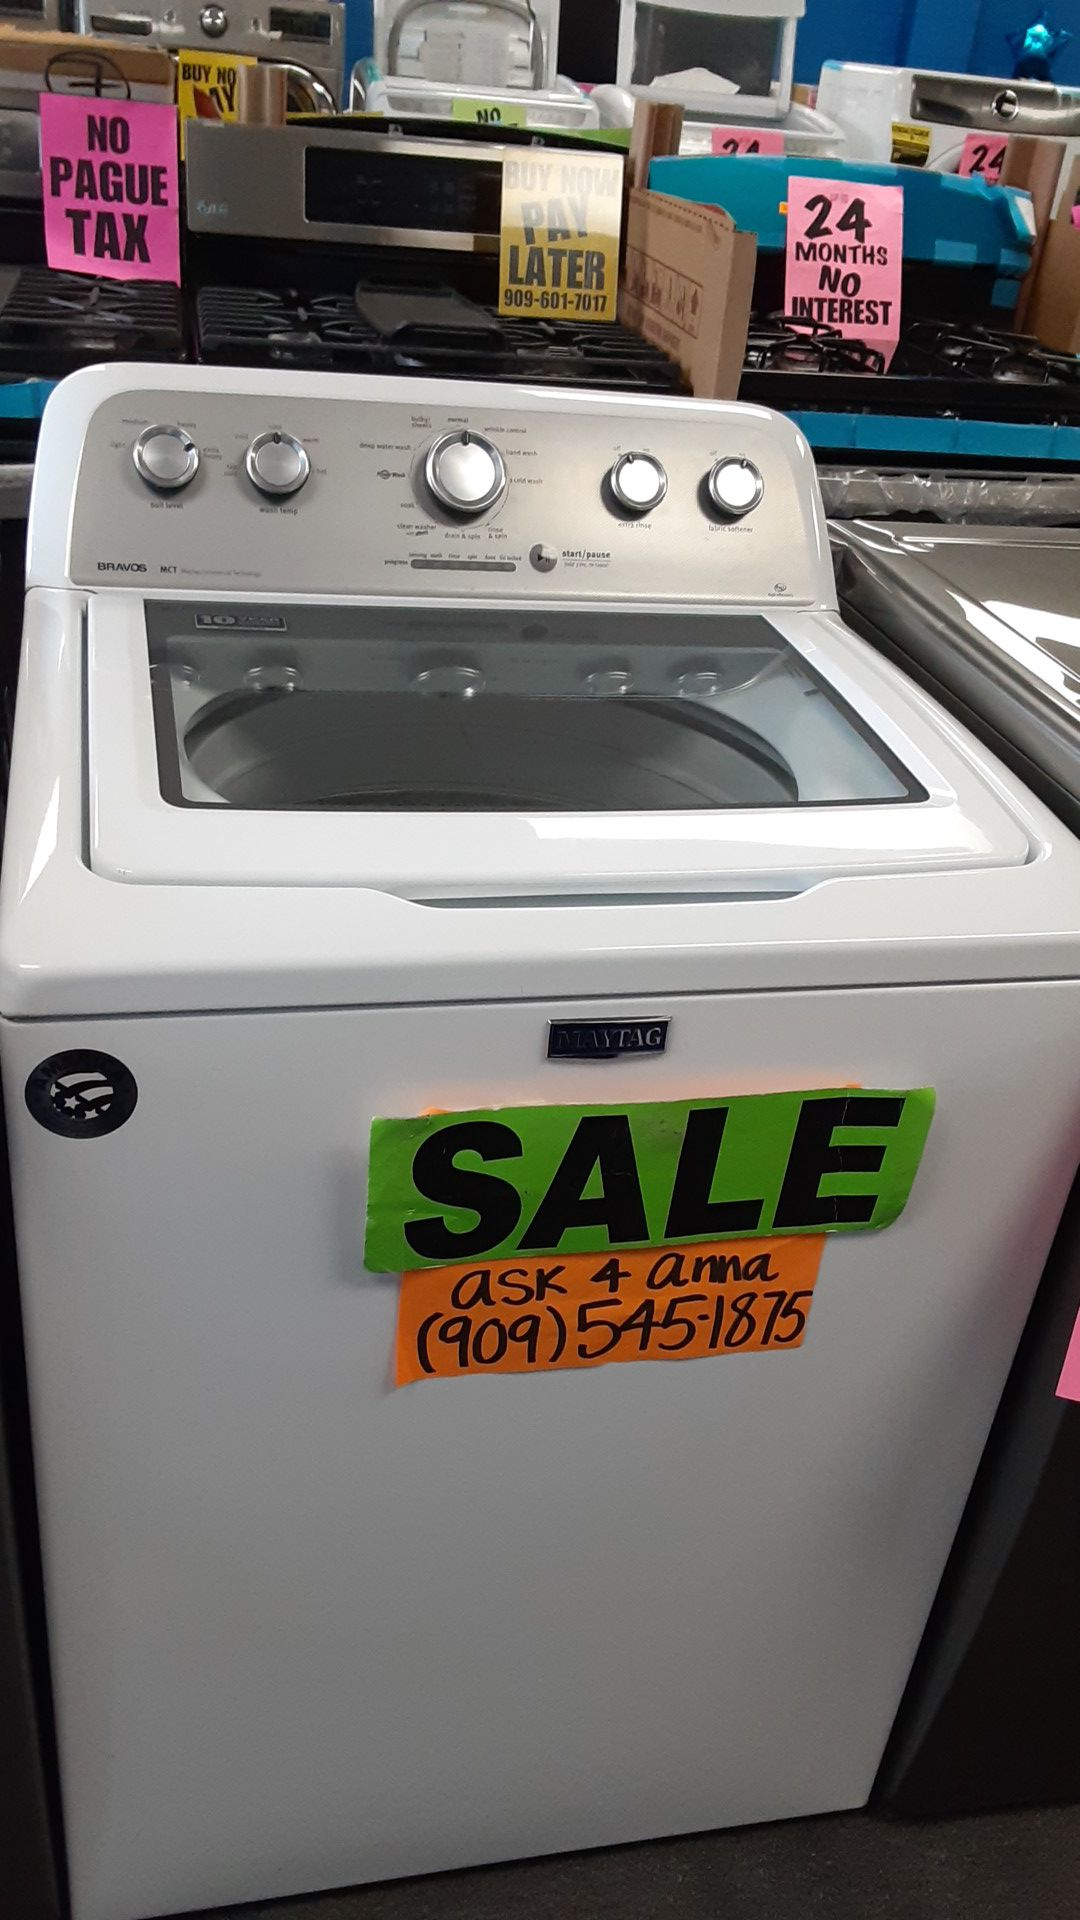 🔴Maytag topload washer 🔹️🔸️ASK 4 ANNA🦋🚚SAME DAY DELIVERY🚚💲PAYMENT PLANS AVAILABLE💲❌NO CREDIT NEEDED❌